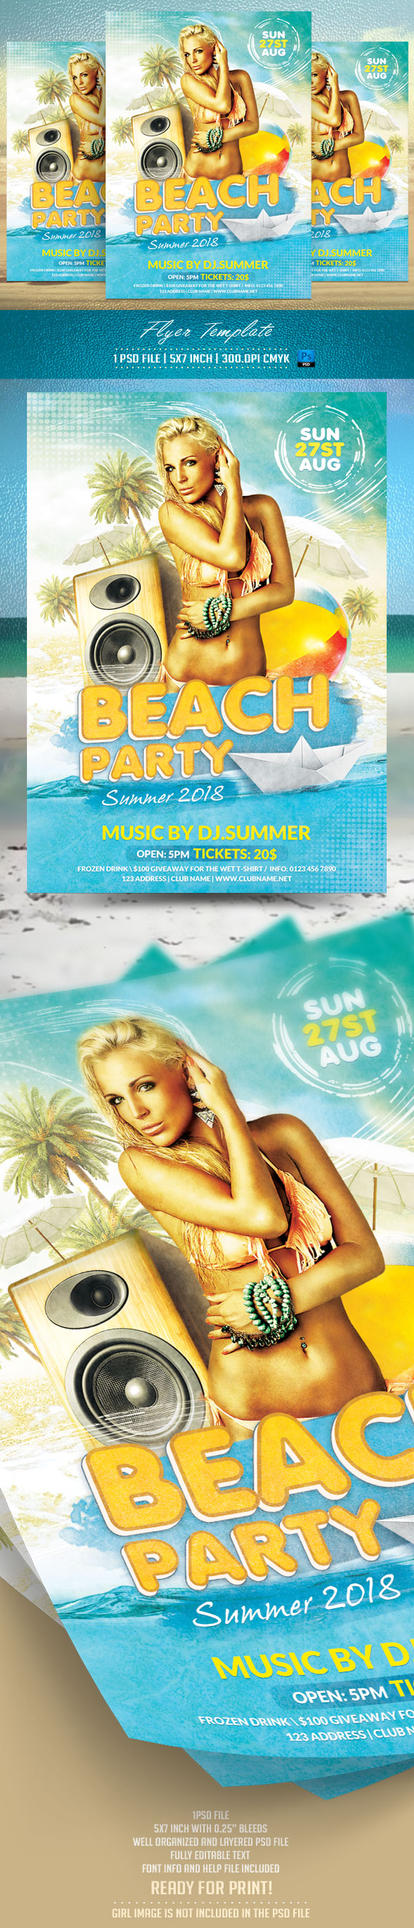 Beach Party Flyer Template by BriellDesign